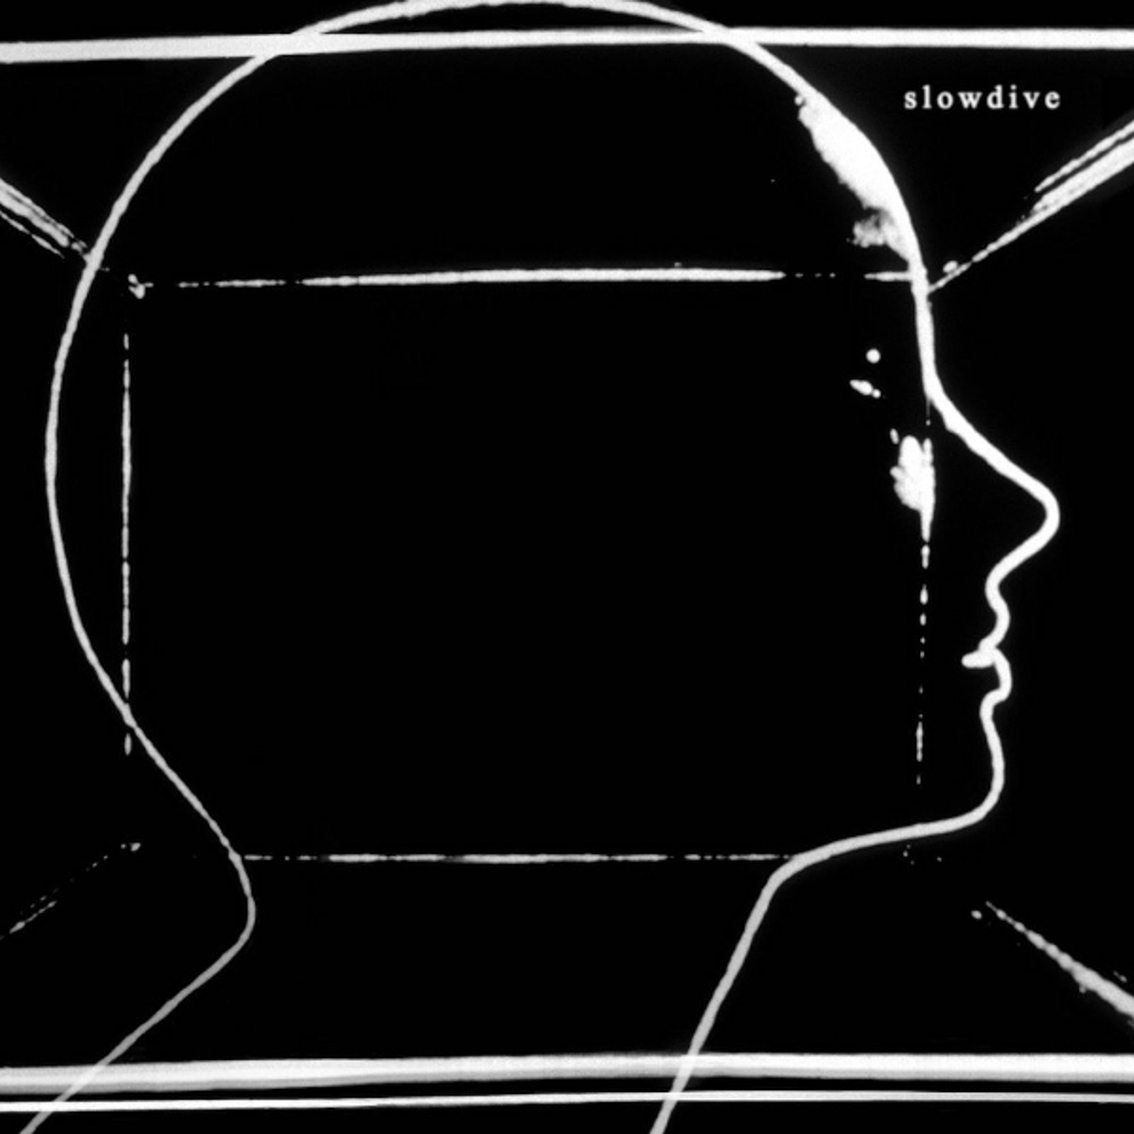 More details available from self-titled Slowdive album - pre-orders available now